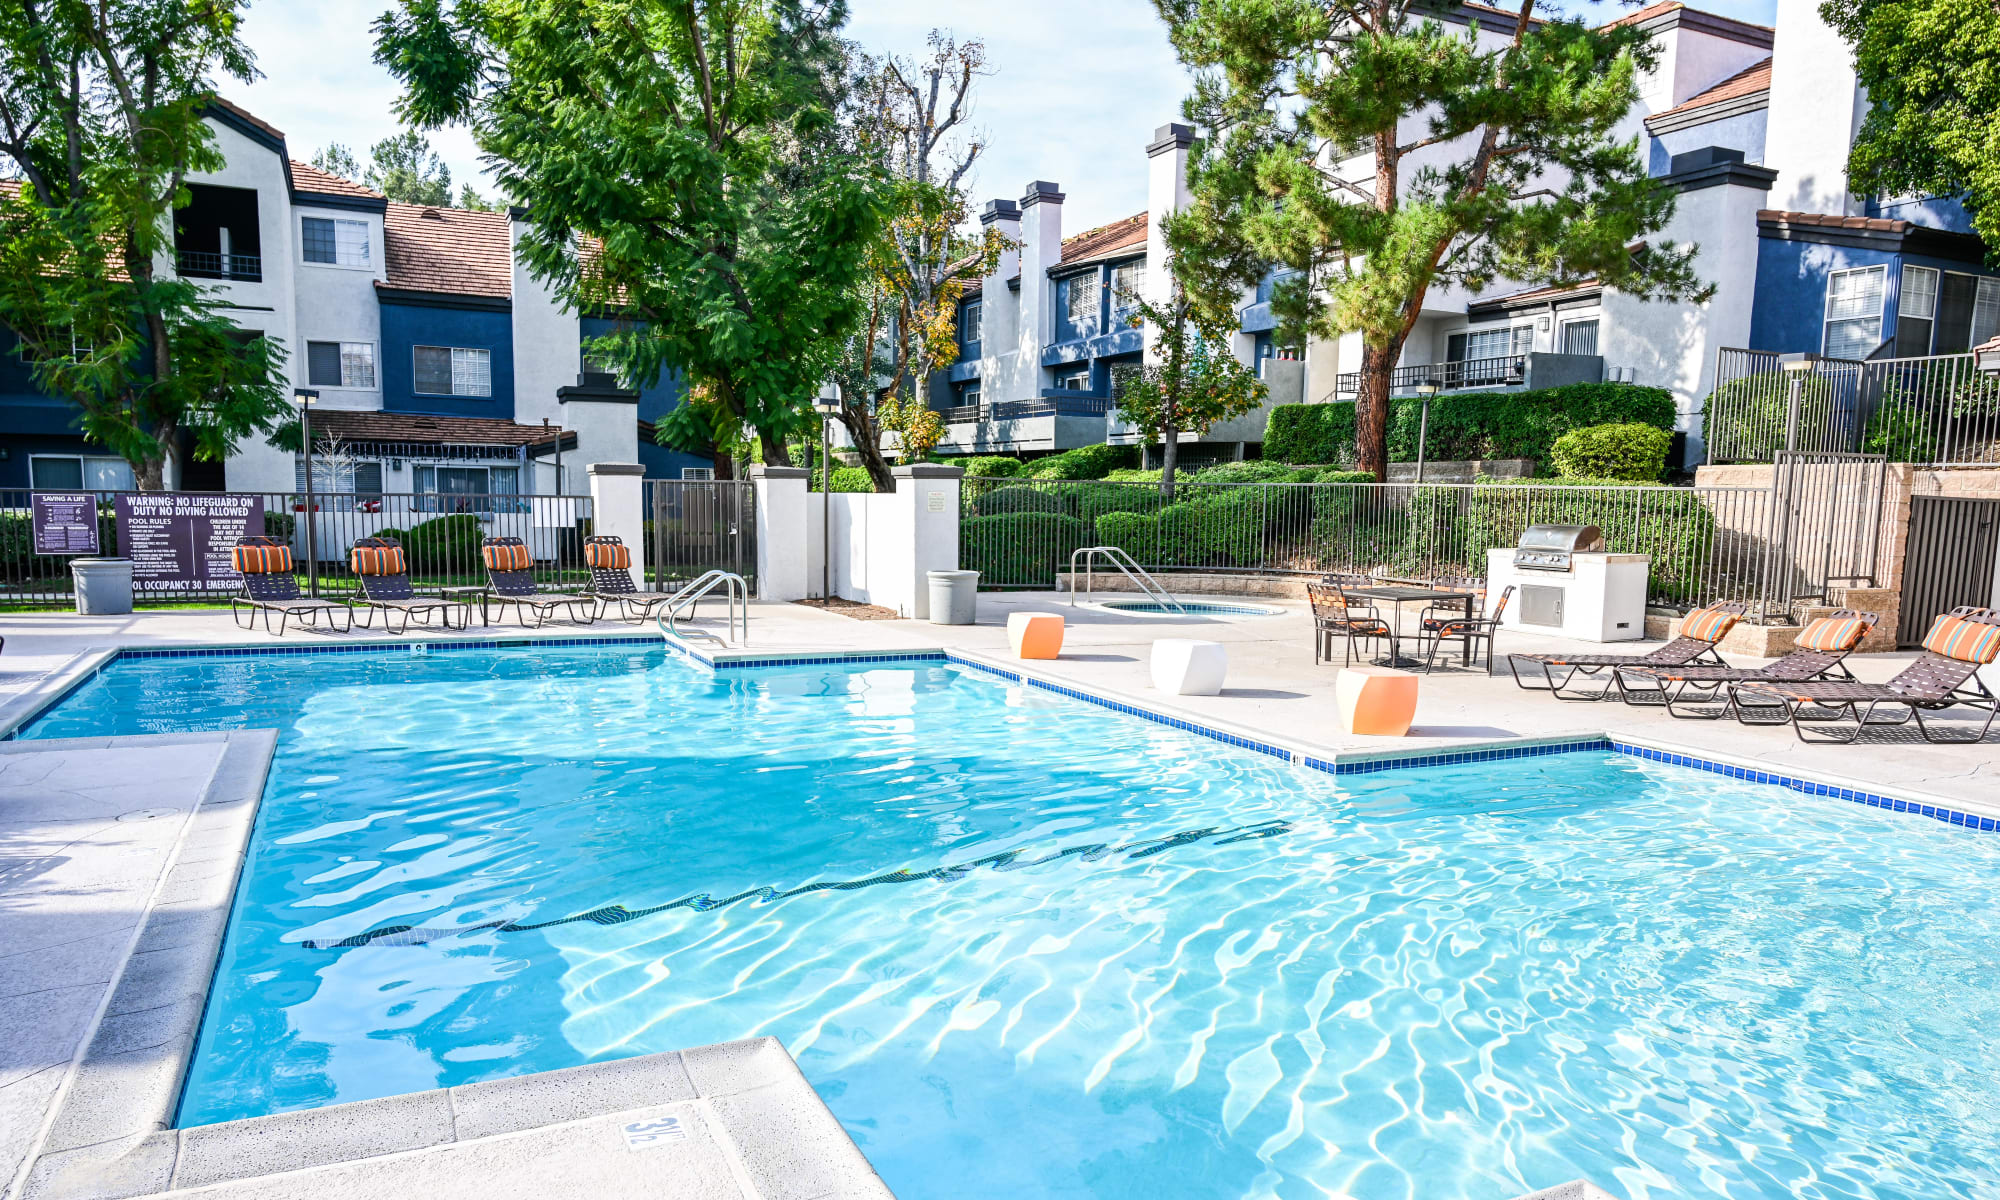 Pet friendly apartments with spacious outdoor areas at Sierra Heights Apartments in Rancho Cucamonga, California